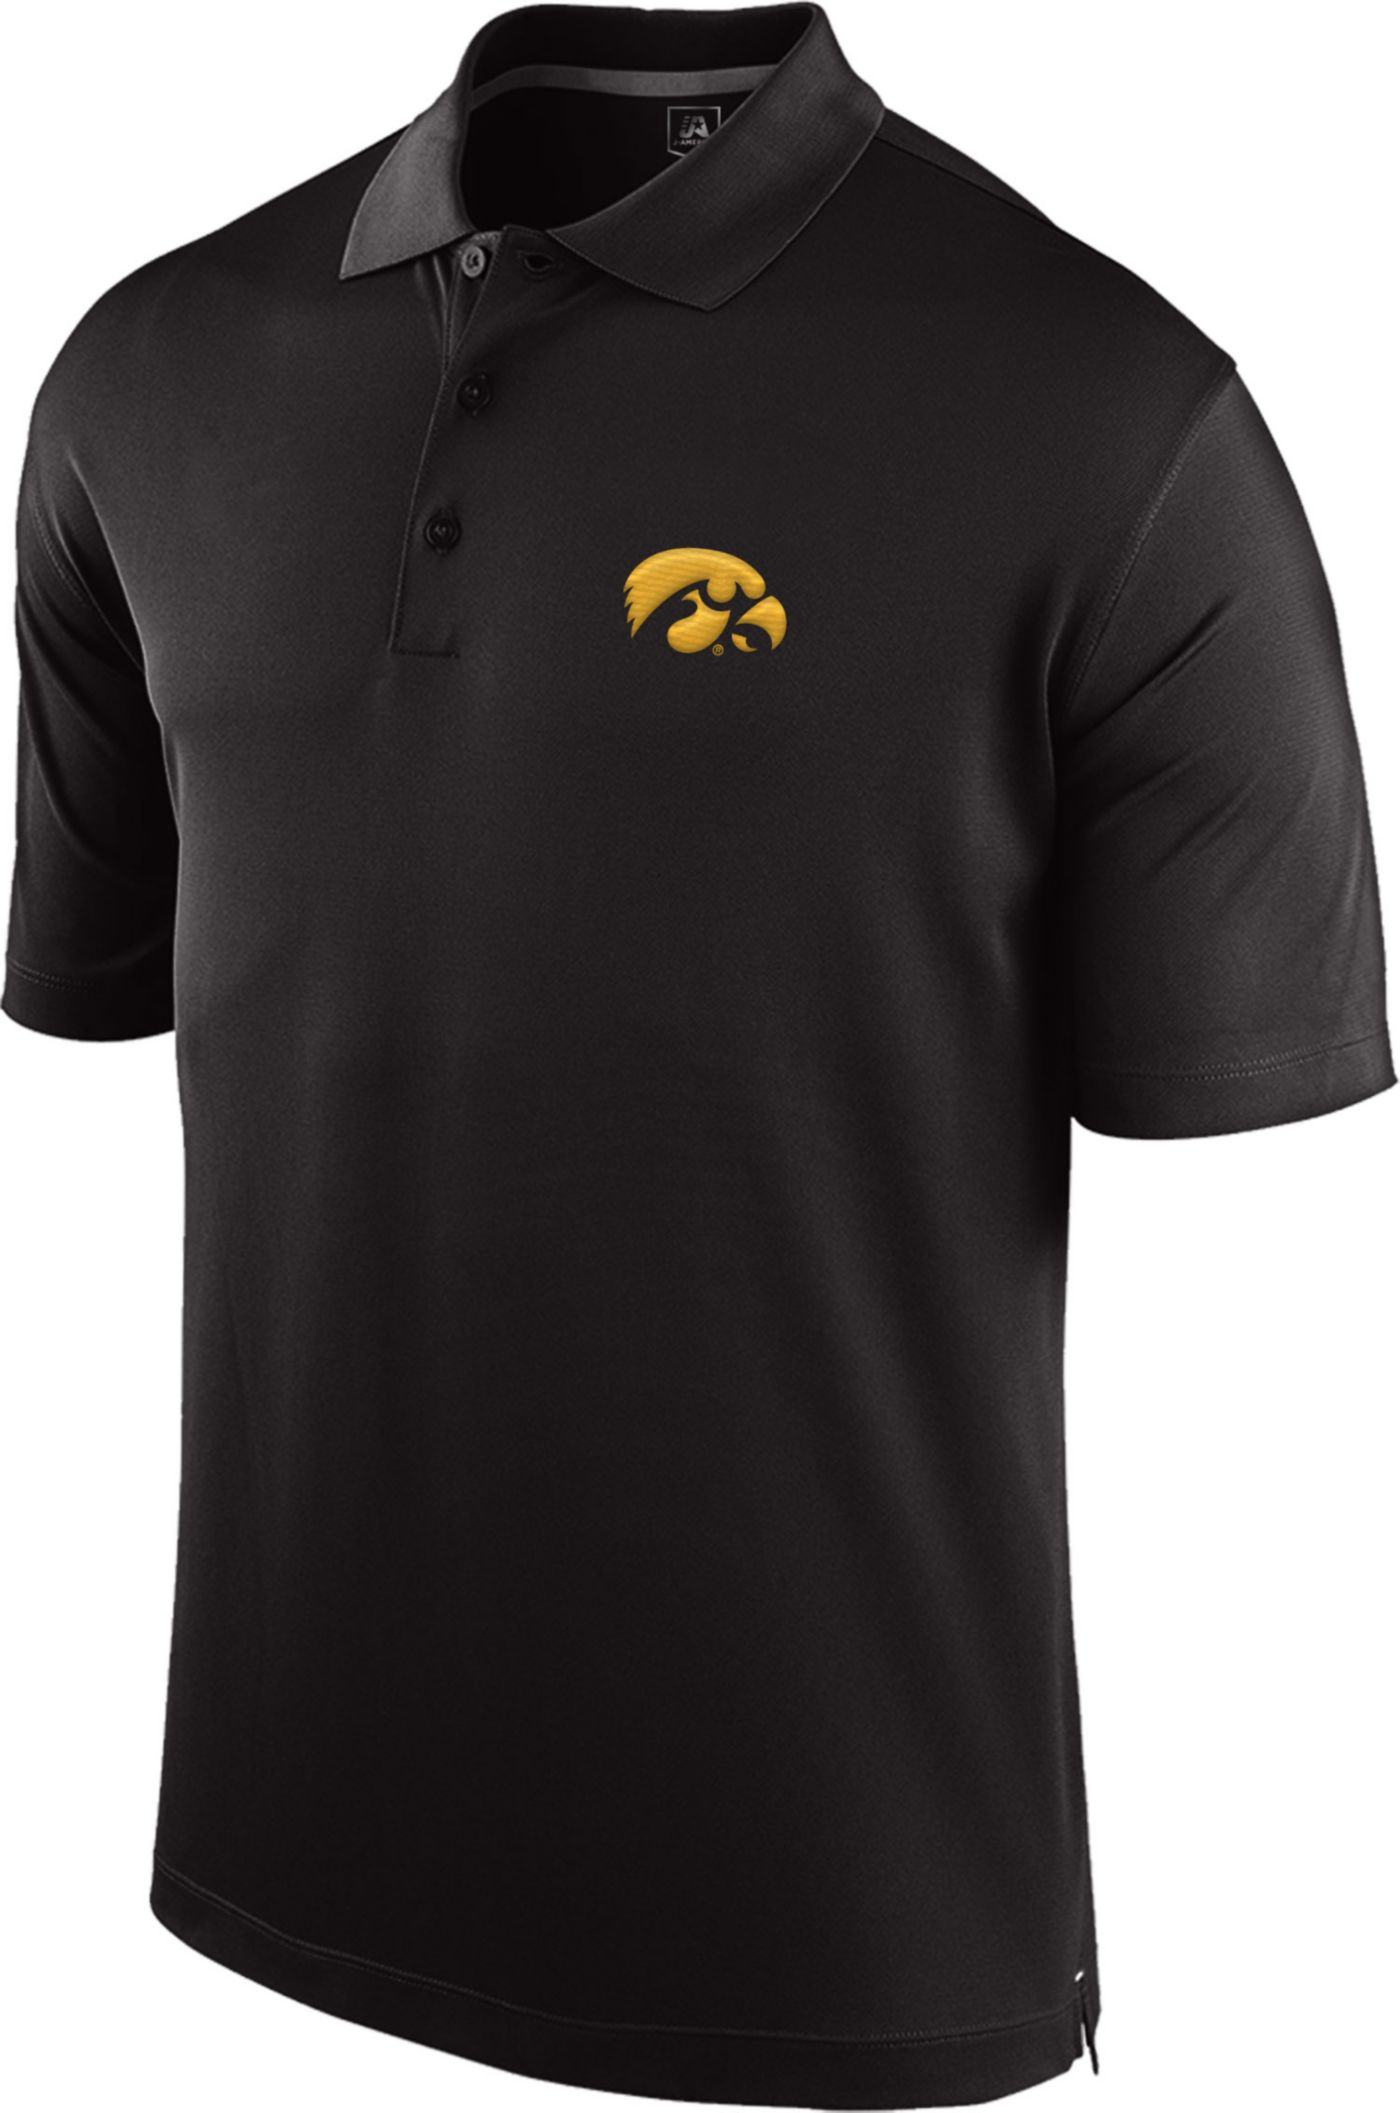 Top of the World Men's Iowa Hawkeyes Black Spector Polo